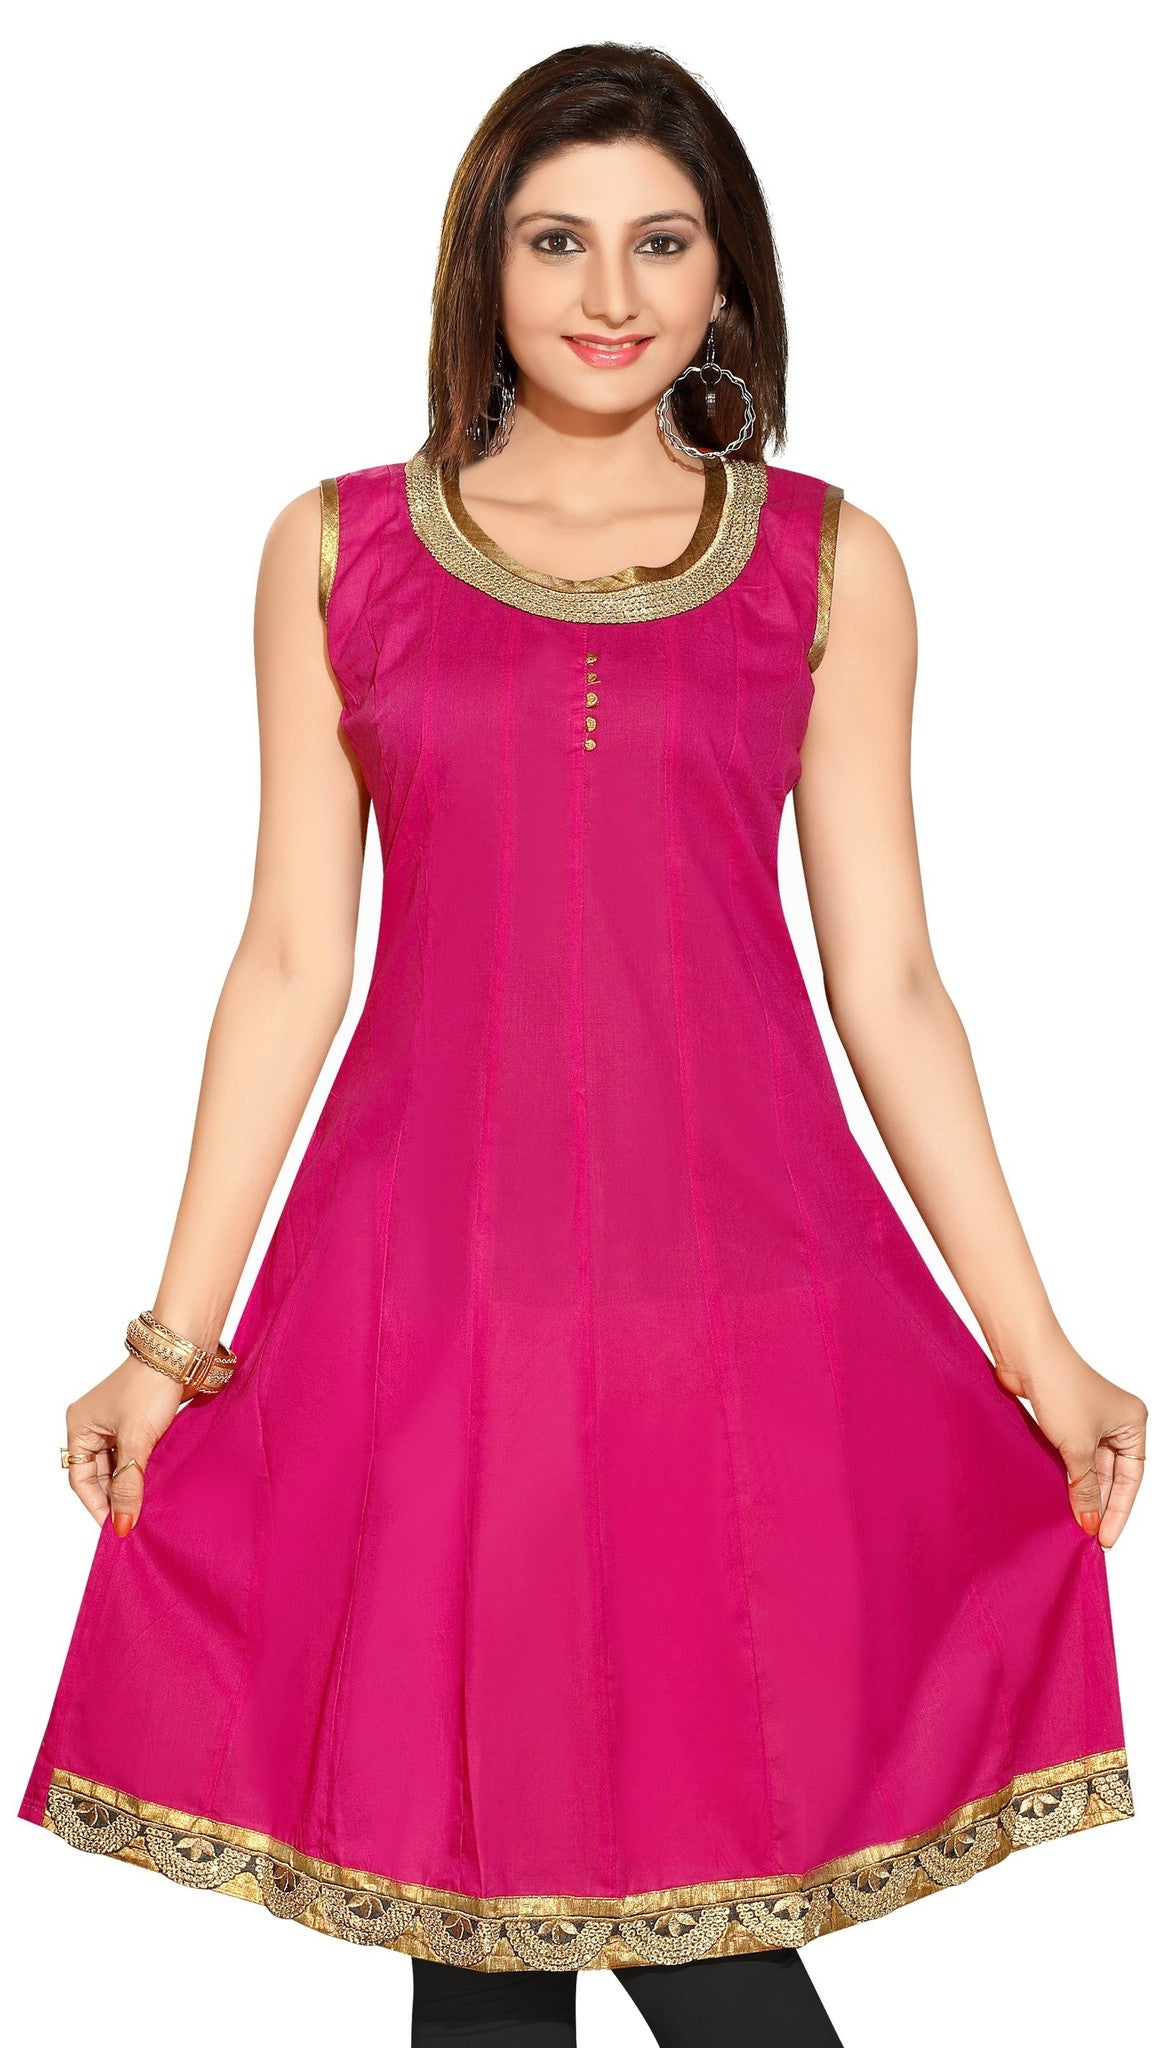 Party Wear/Semi Party Wear Short Sleeves Cotton Kurti in Pink Color